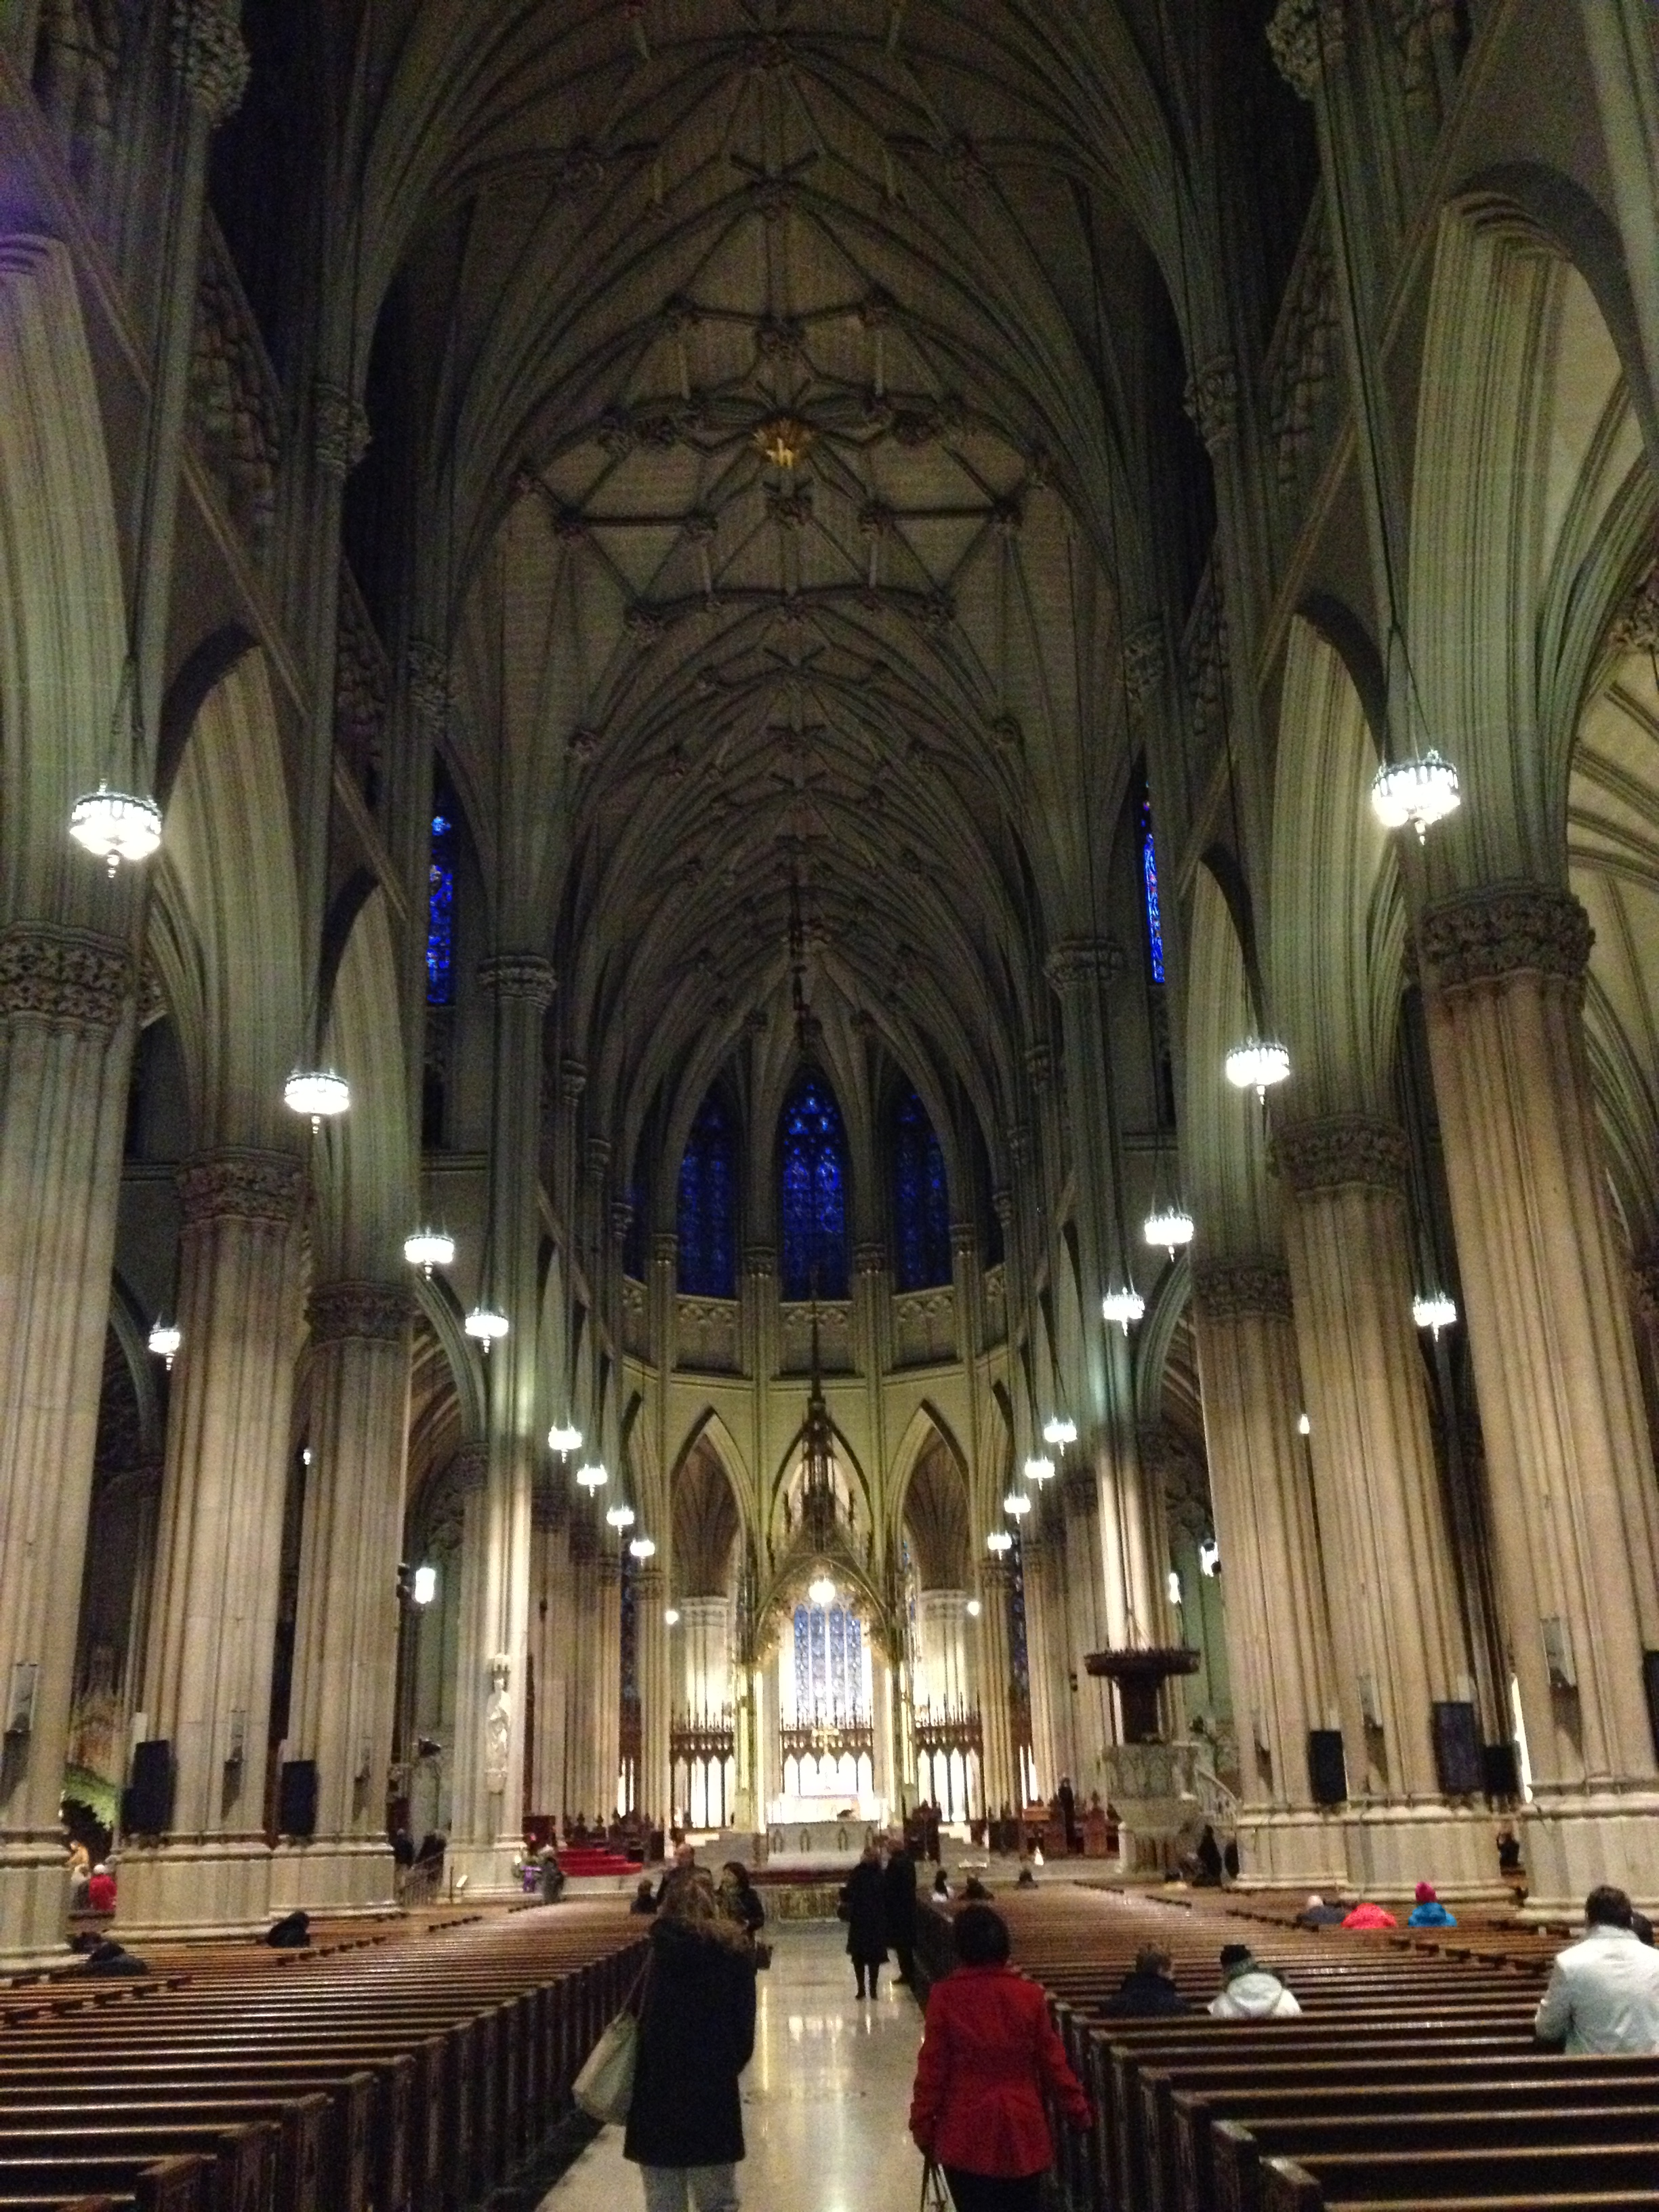 St patrick s cathedral a gothic revival building eng for Gothic revival interior